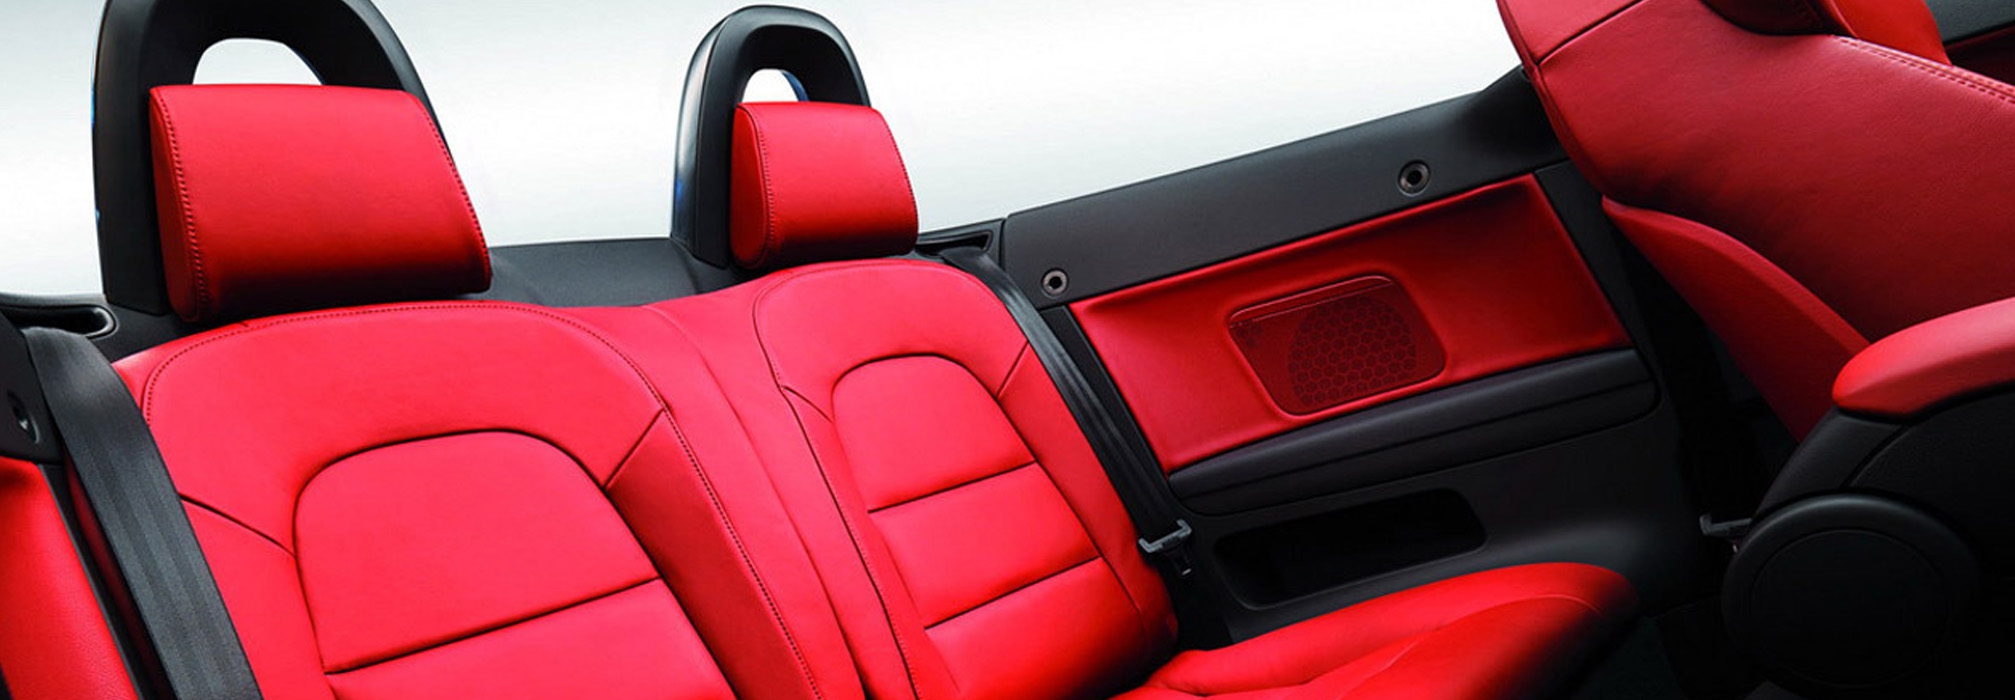 Aaa Auto Trim Best Auto Upholstery Yacht Convertible Tops Boats